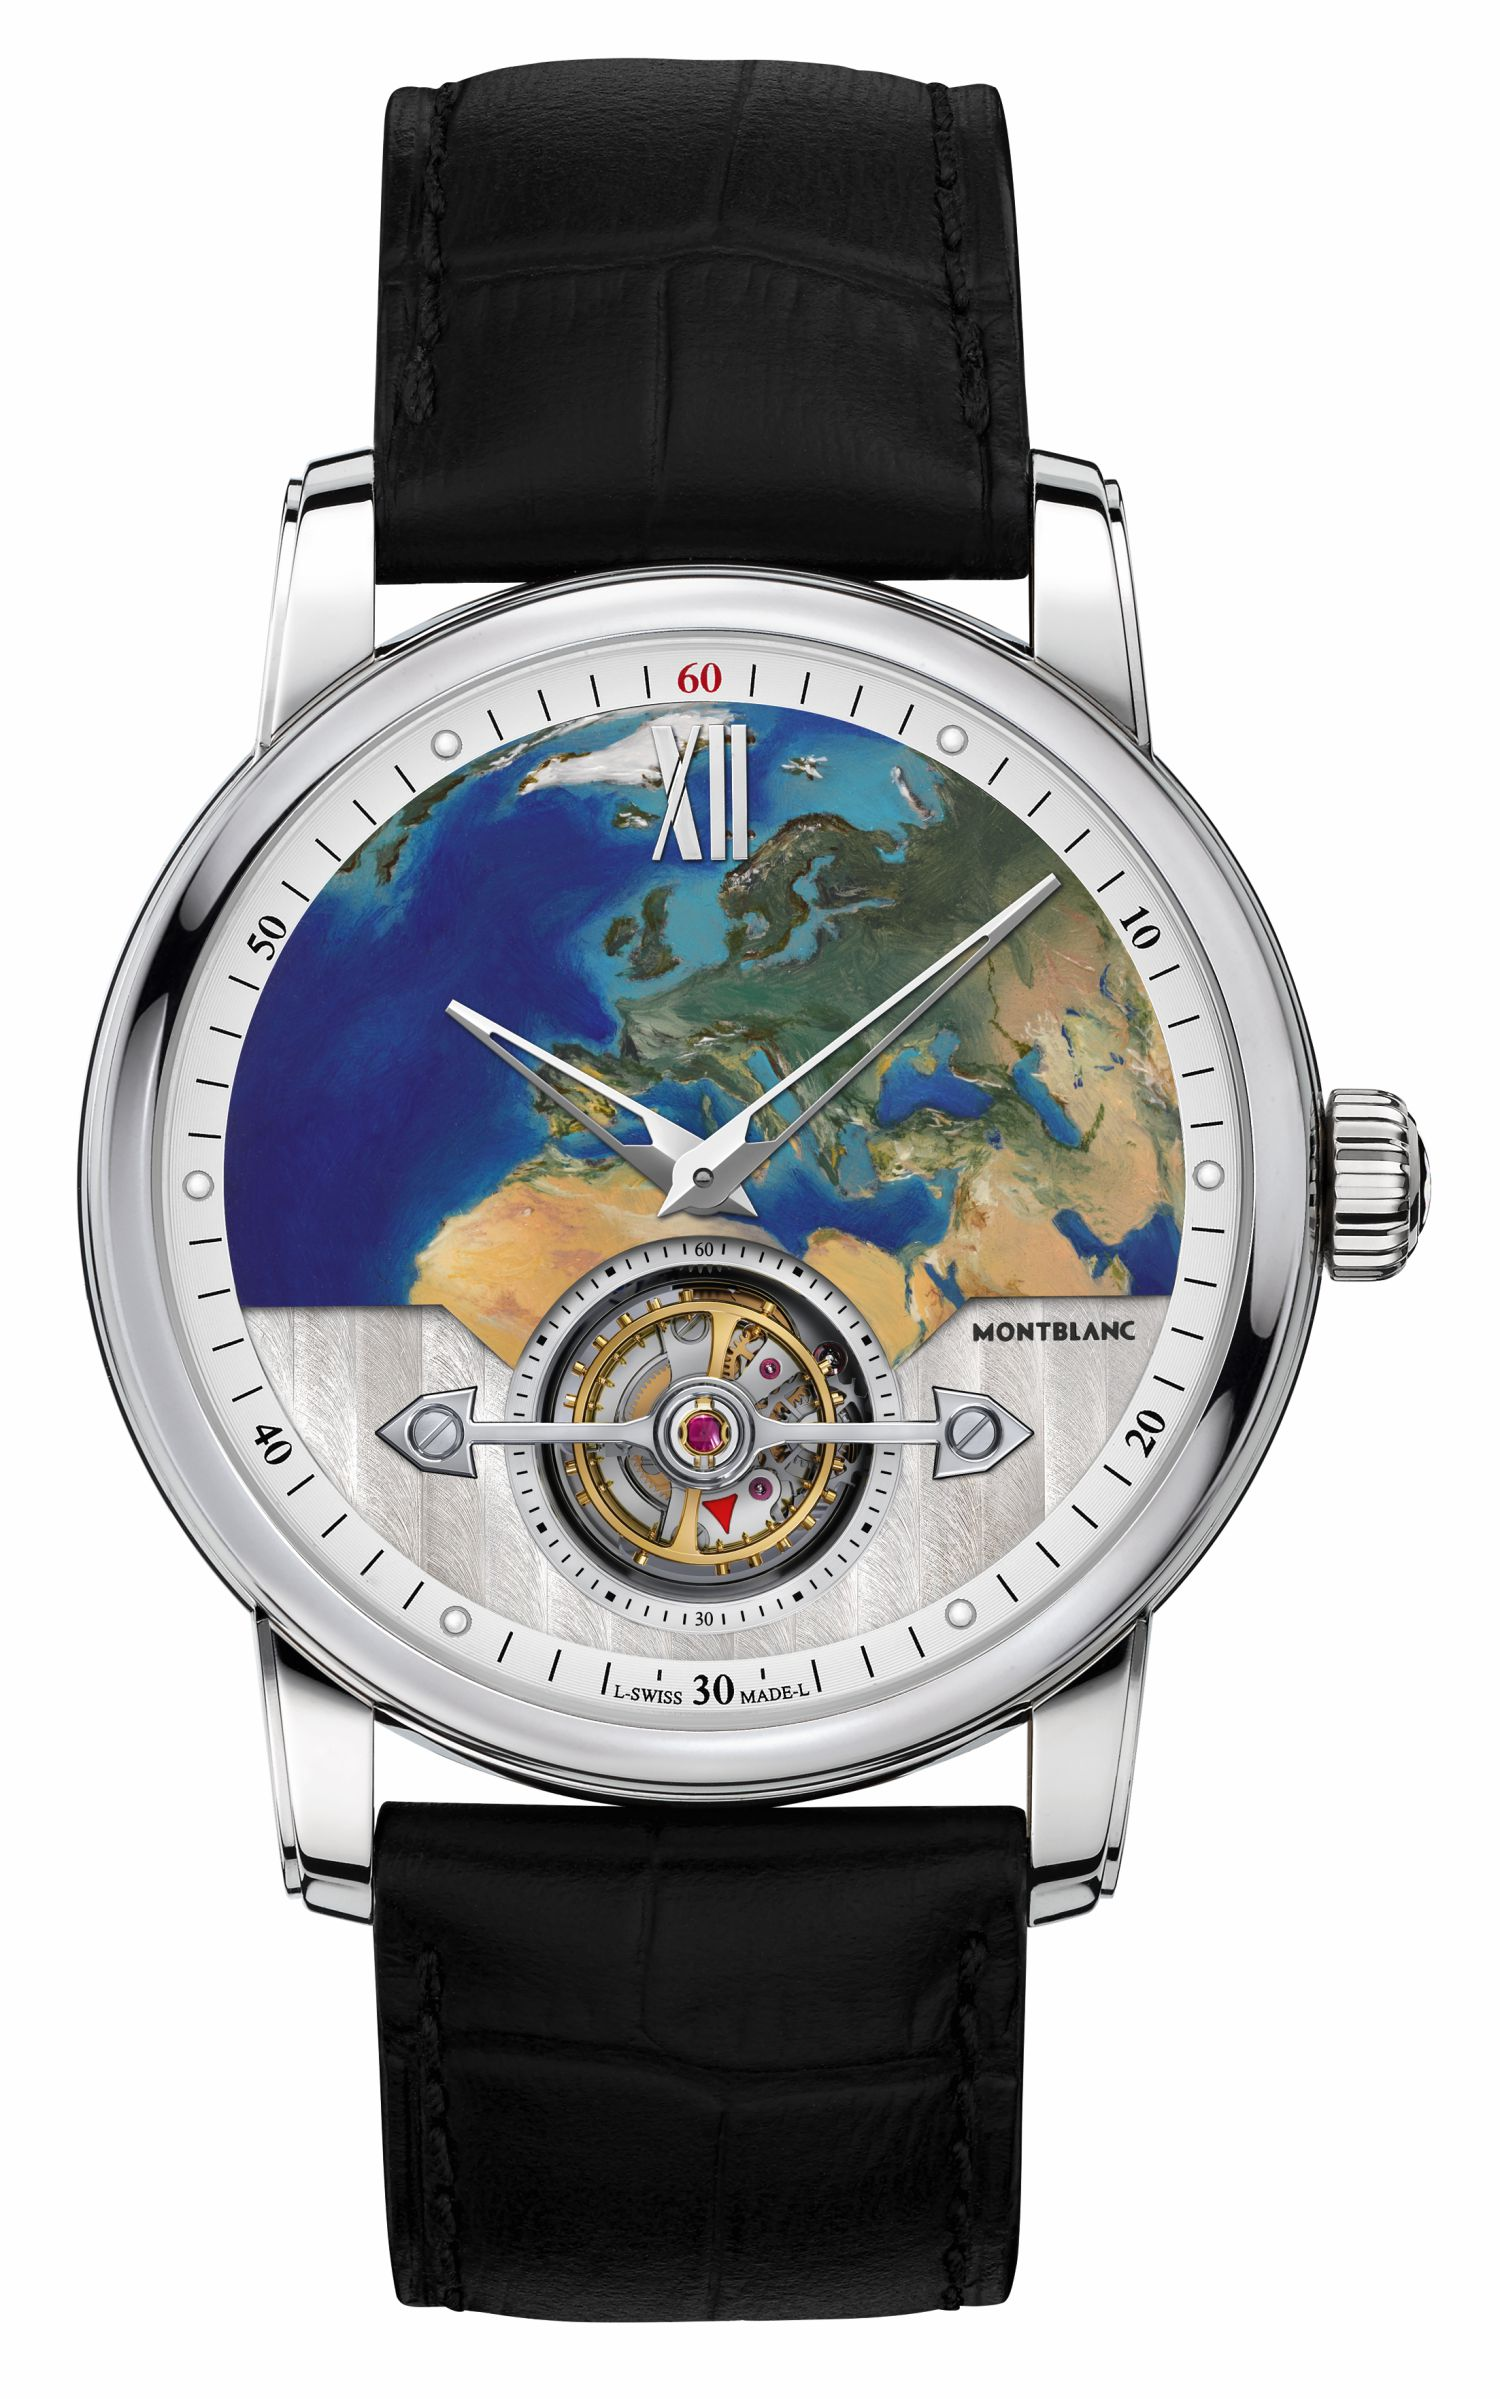 Montblanc-4810-ExoTourbilon-Slim-110-Years-Edition-Europe.jpg